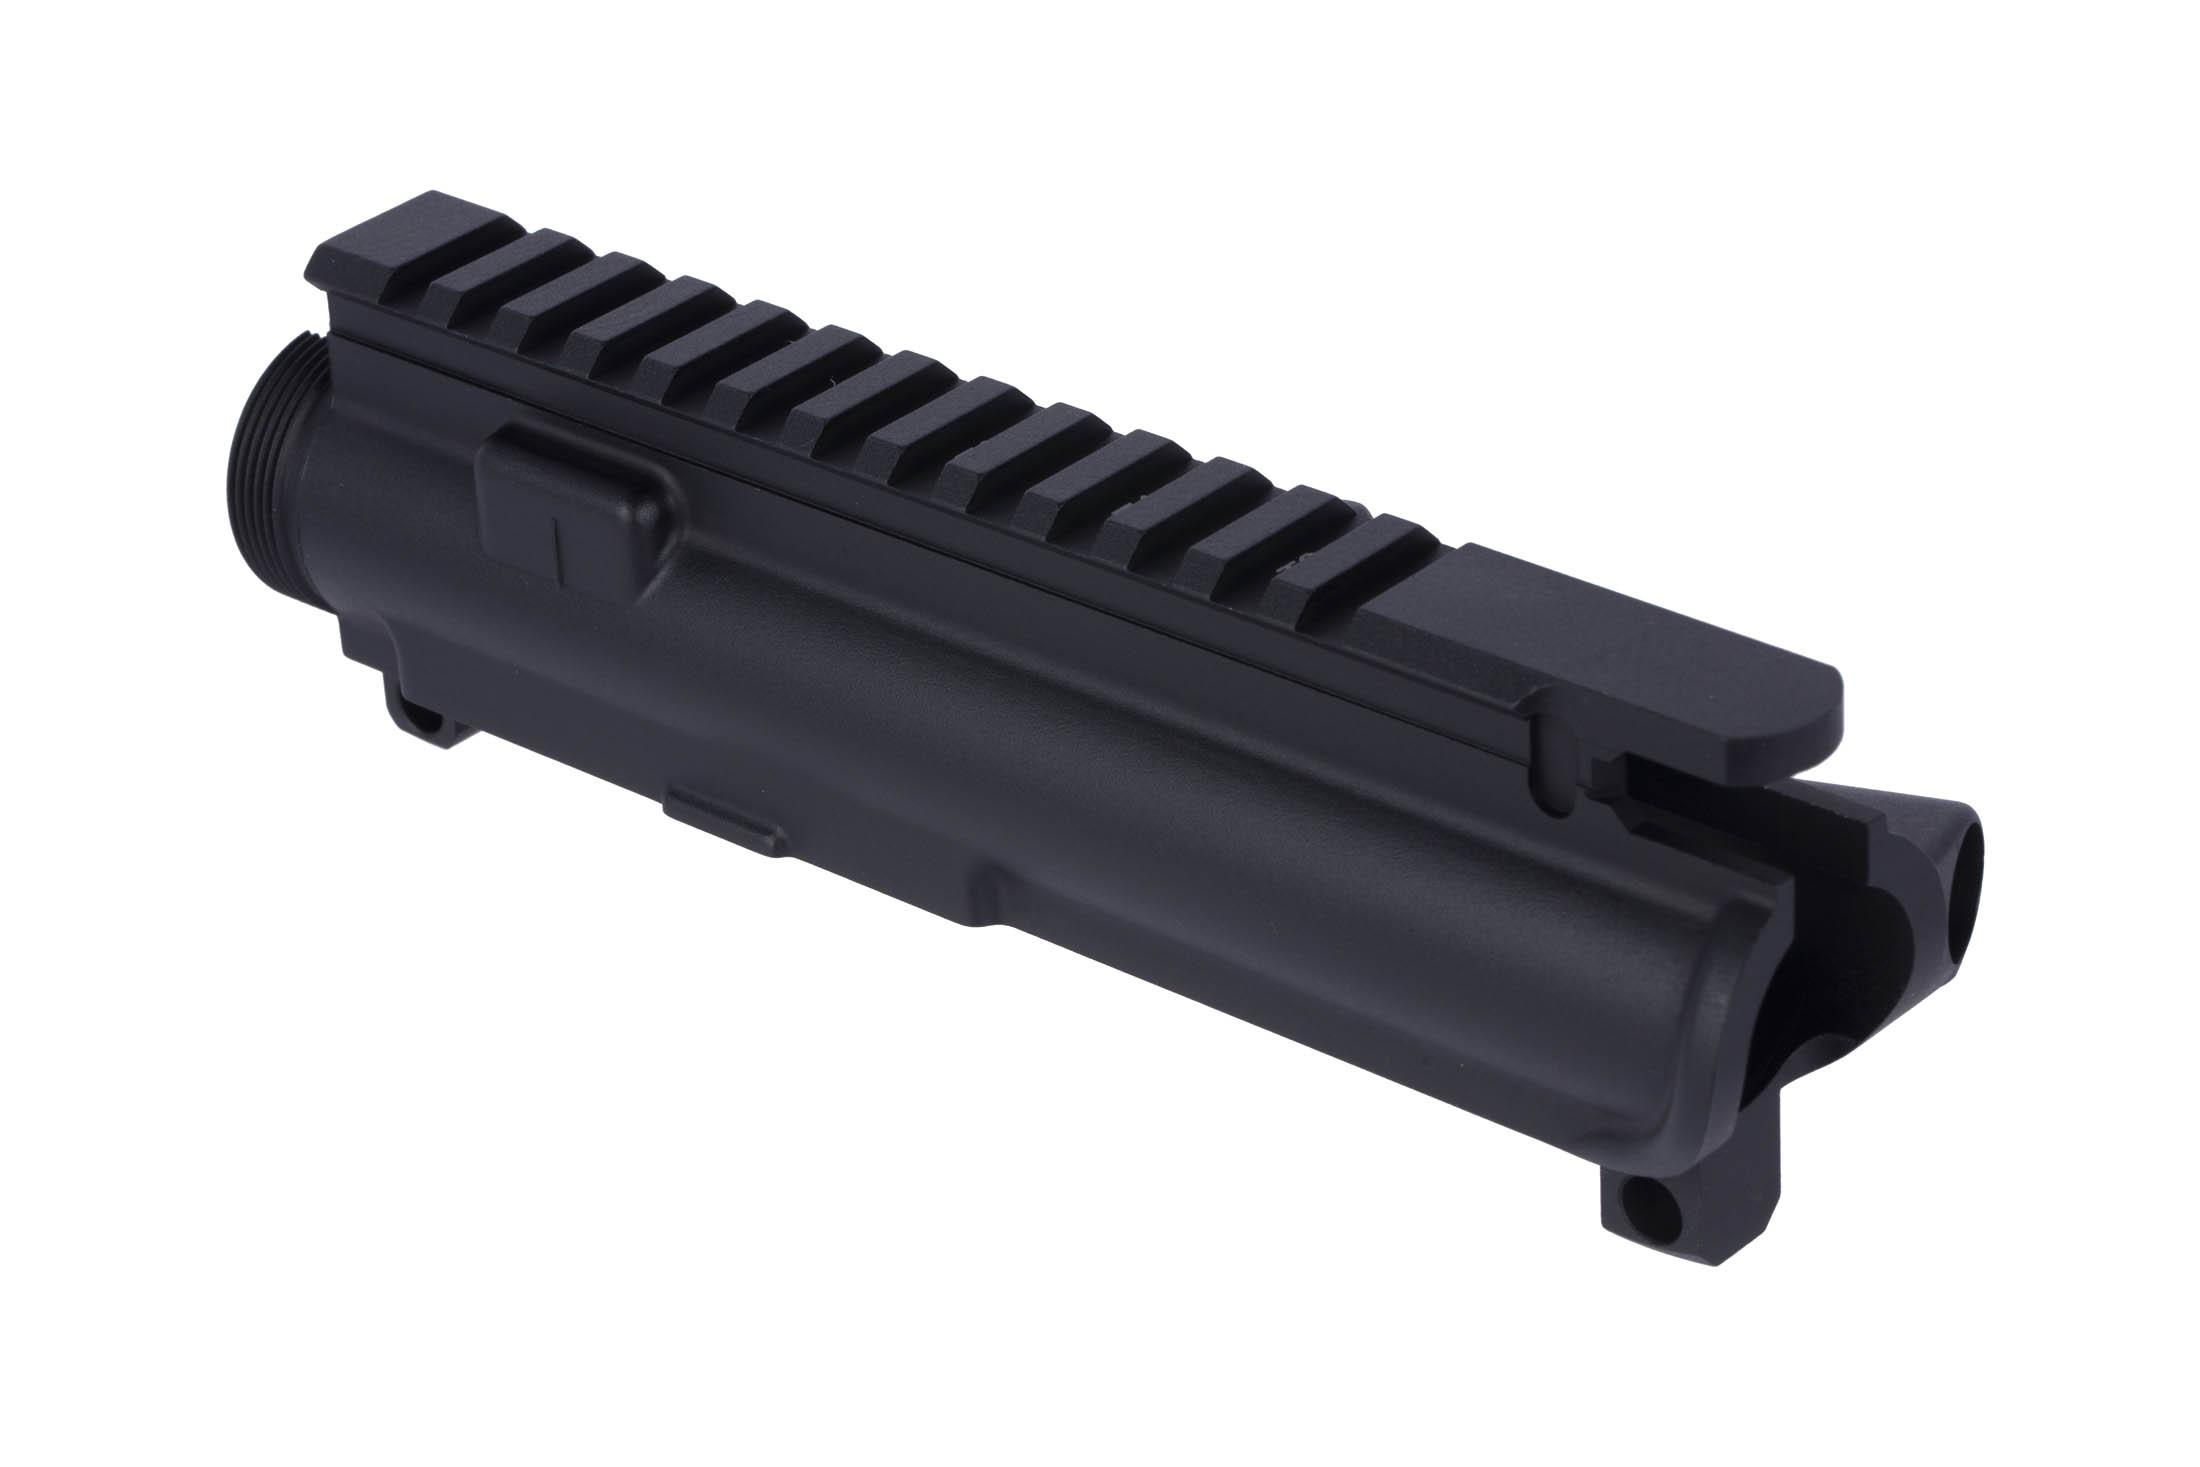 The Expo Arms AR-15 stripped upper receiver is the foundation of your upper build